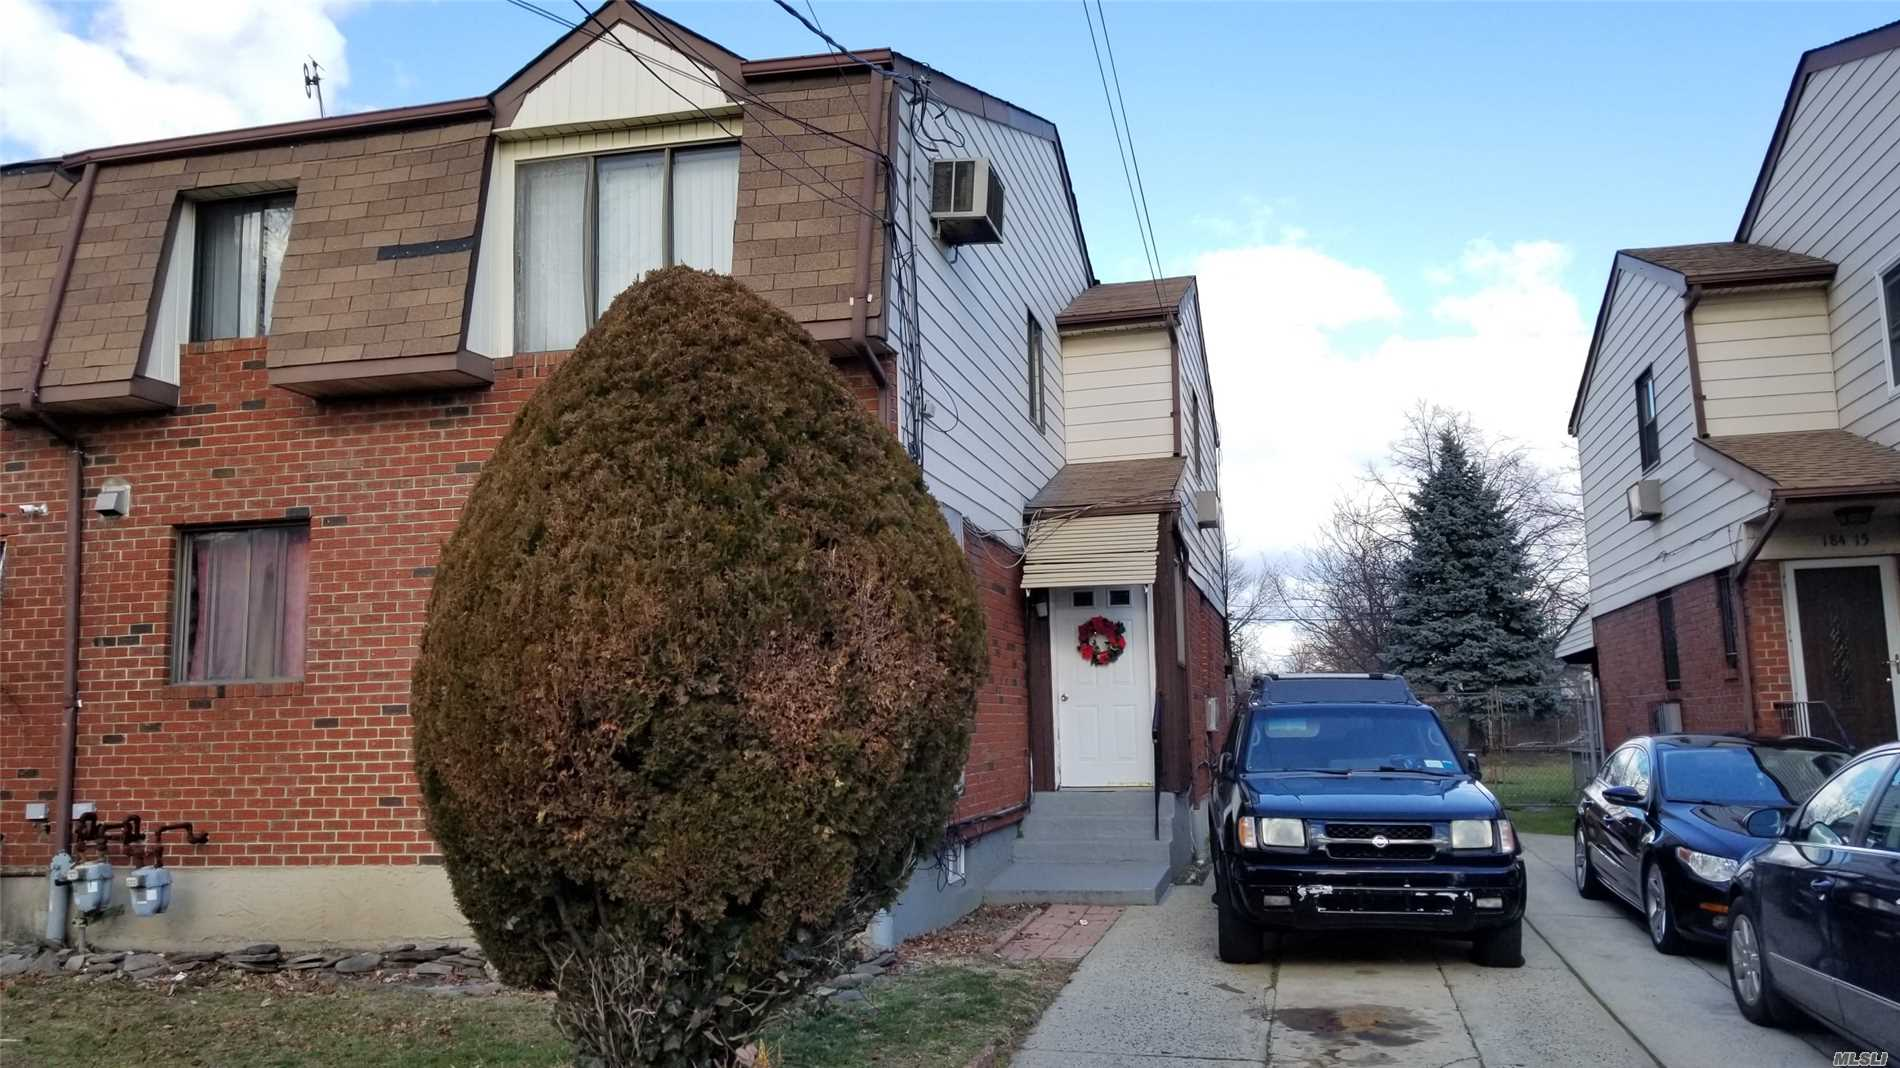 Buit In 1985, 2 Family House Sitting On A Oversized Lot 33 X 151, Brick/Frame House. Finished Basement With Separate Entrance. Private Driveway. Very Quiet Block. Property Is Tenanted.